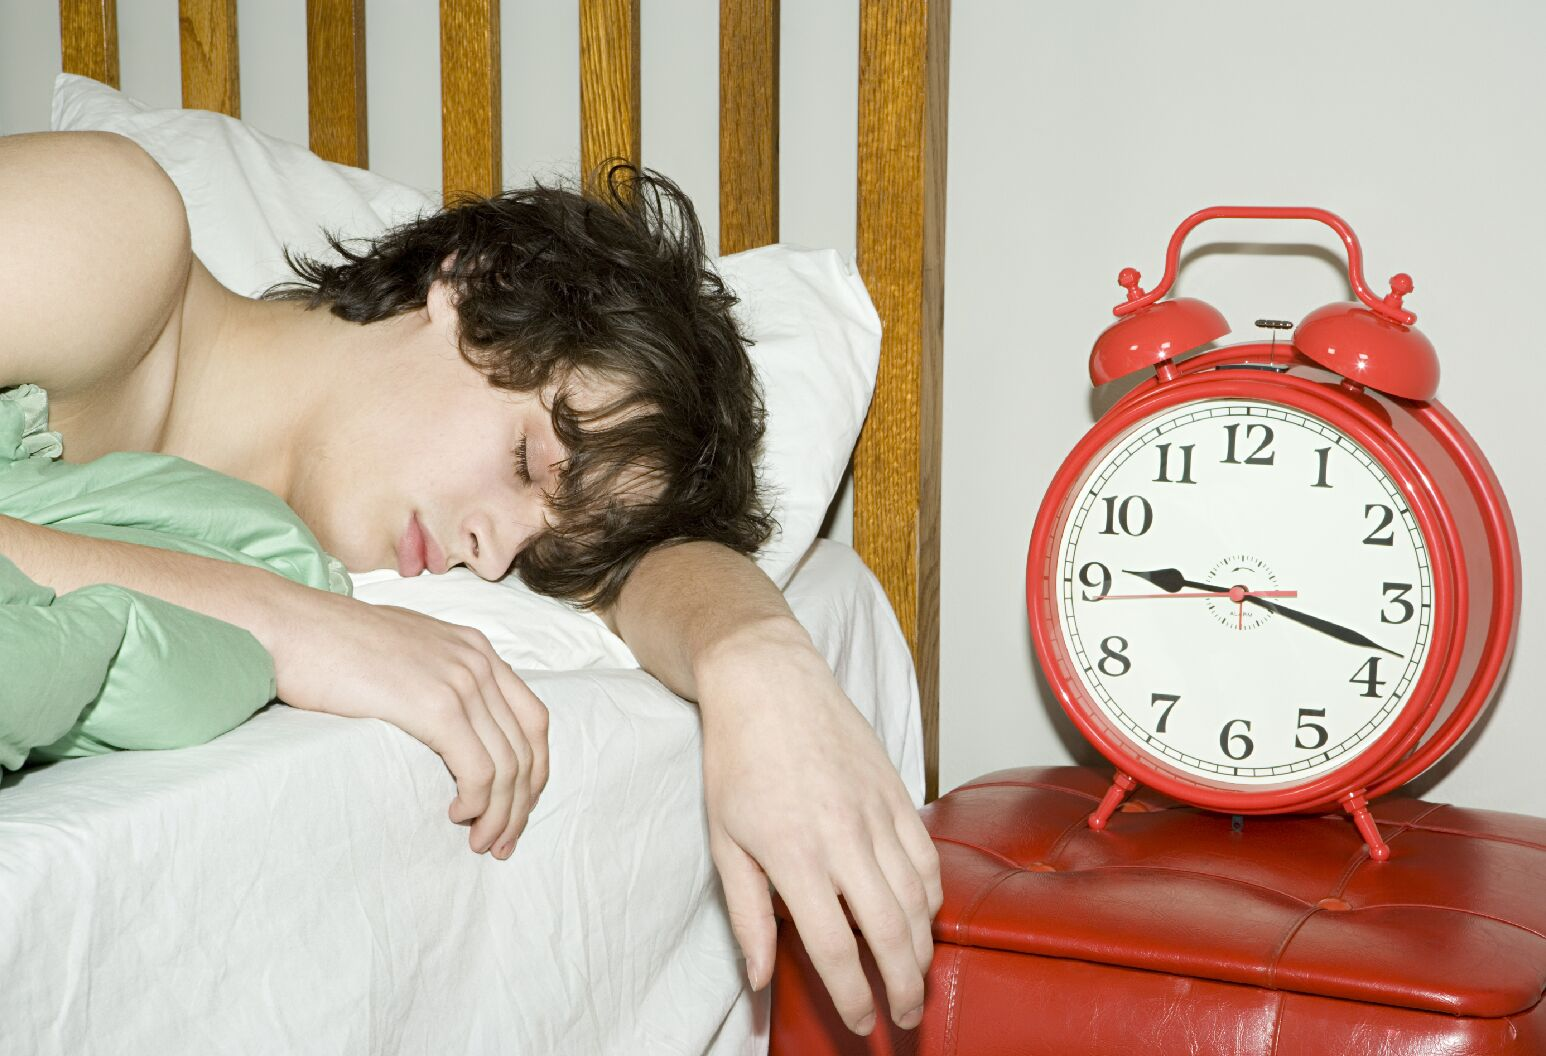 A boy sleeping in bed next to a red alarm clock